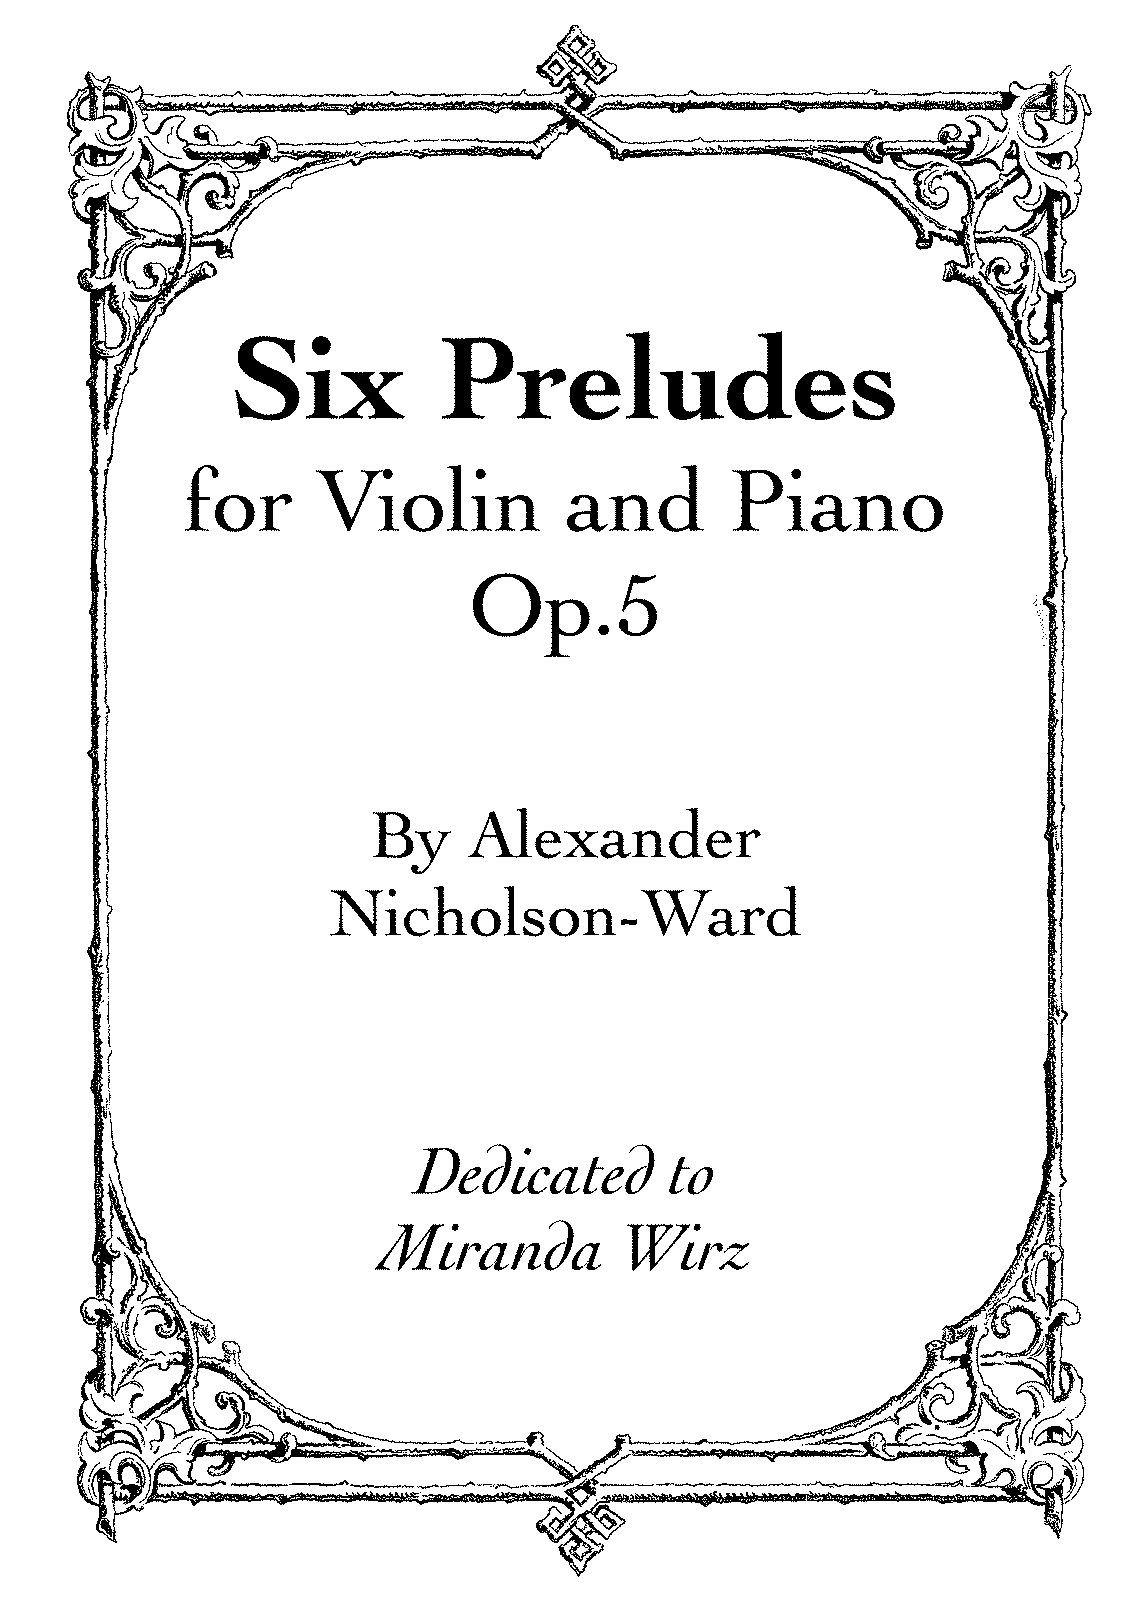 PMLP204443-Six Preludes for Violin and Piano Op. 5.pdf